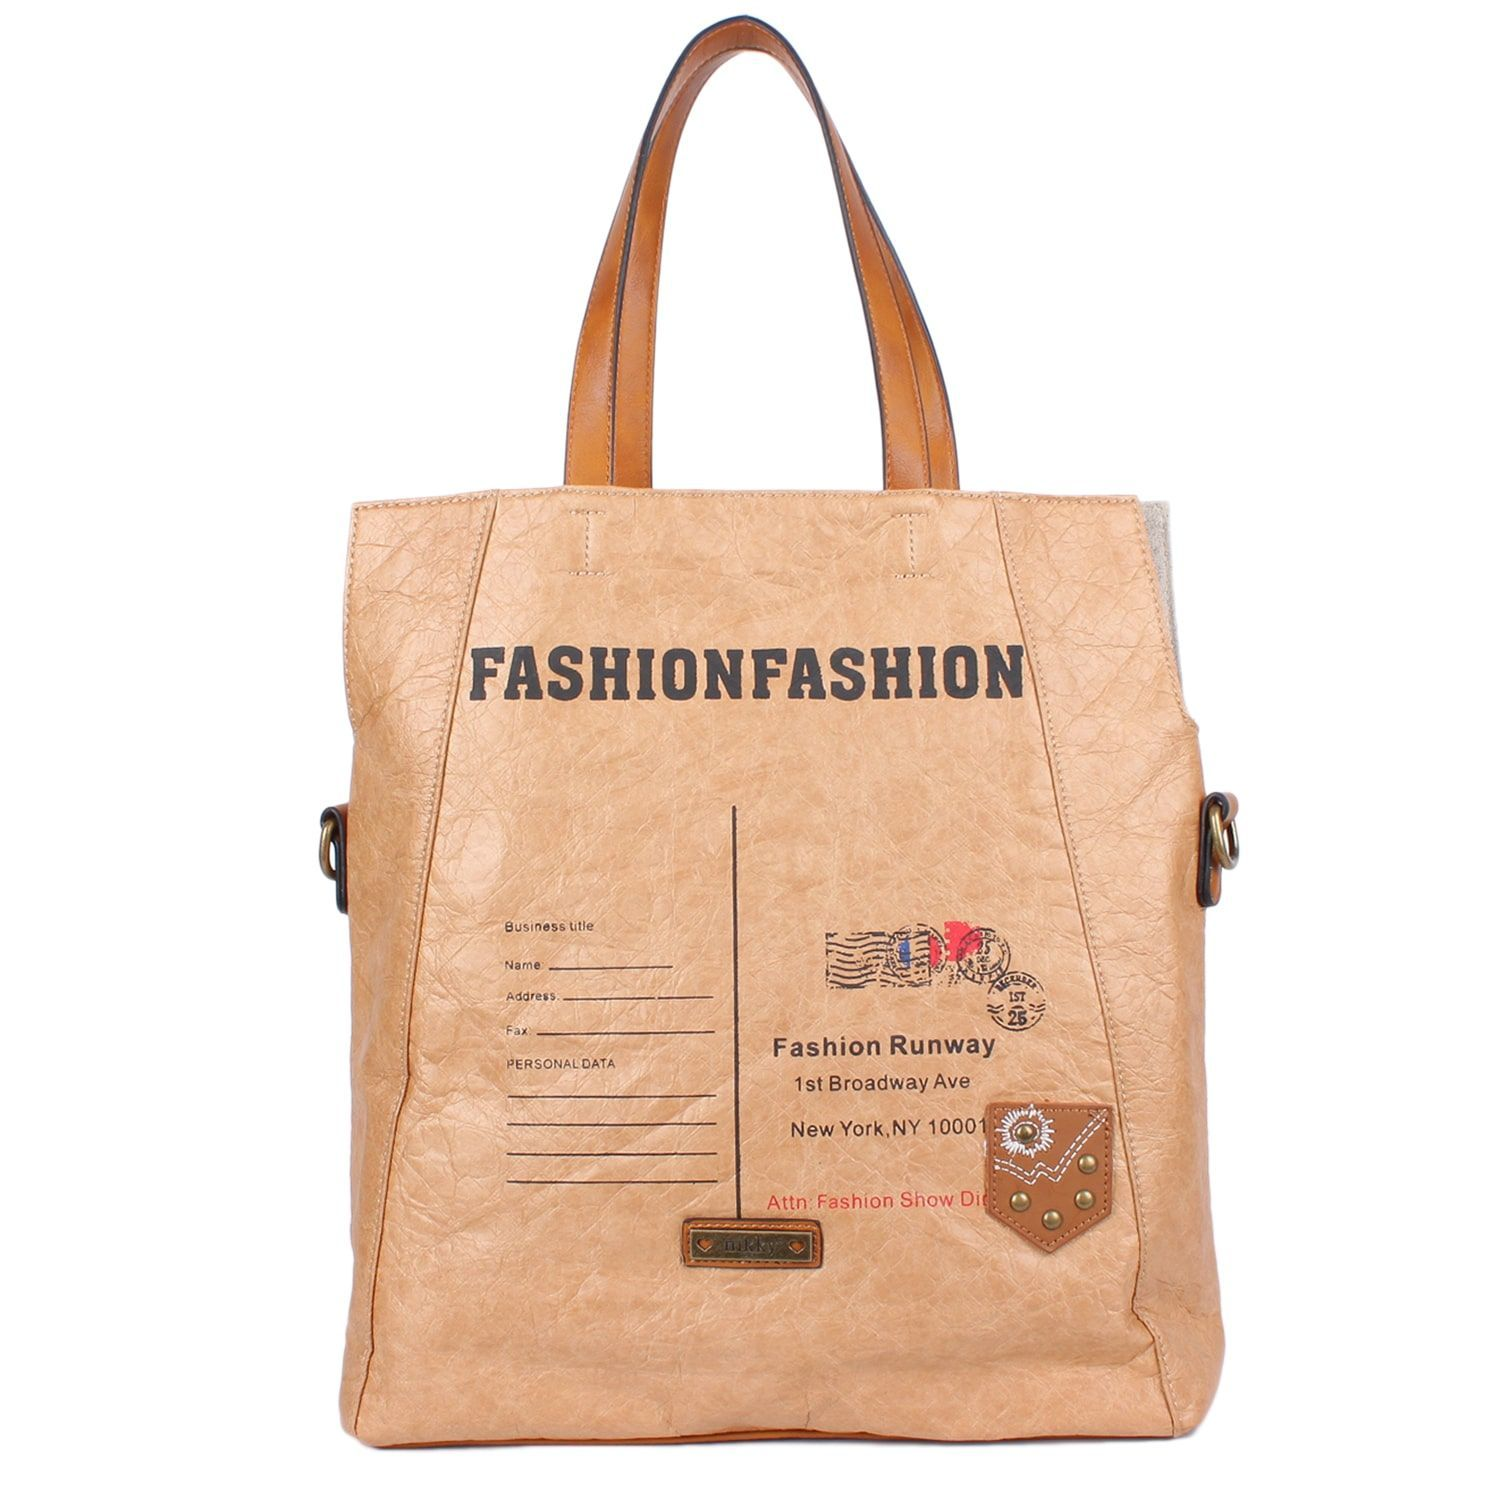 Nikky Multiple Compartment Envelope Inspired Fashion Tote Bag